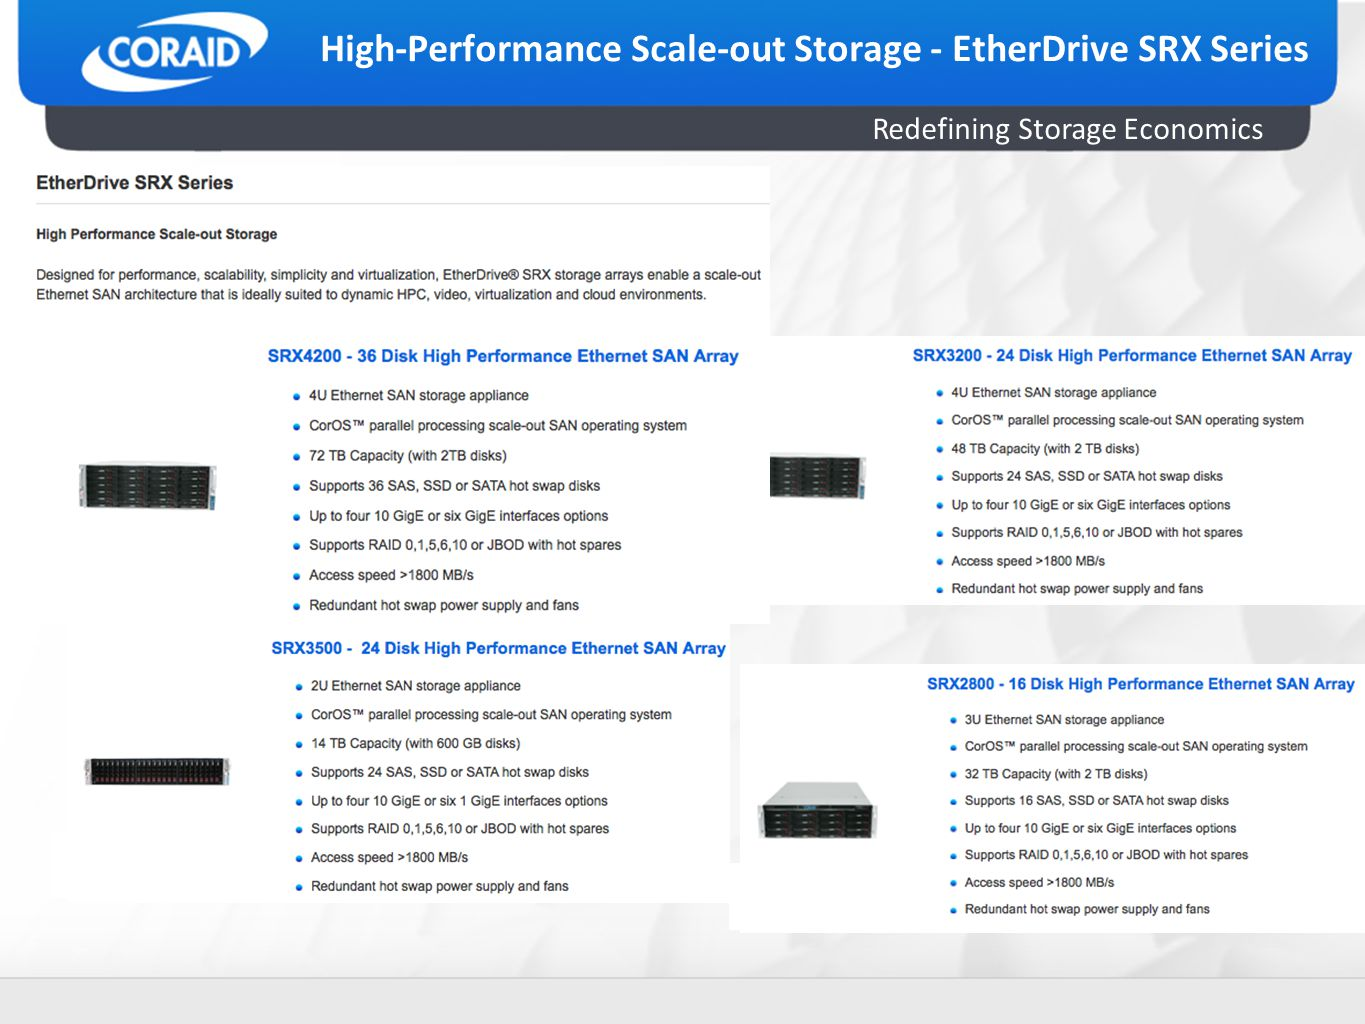 Redefining Storage Economics High-Performance Scale-out Storage - EtherDrive SRX Series